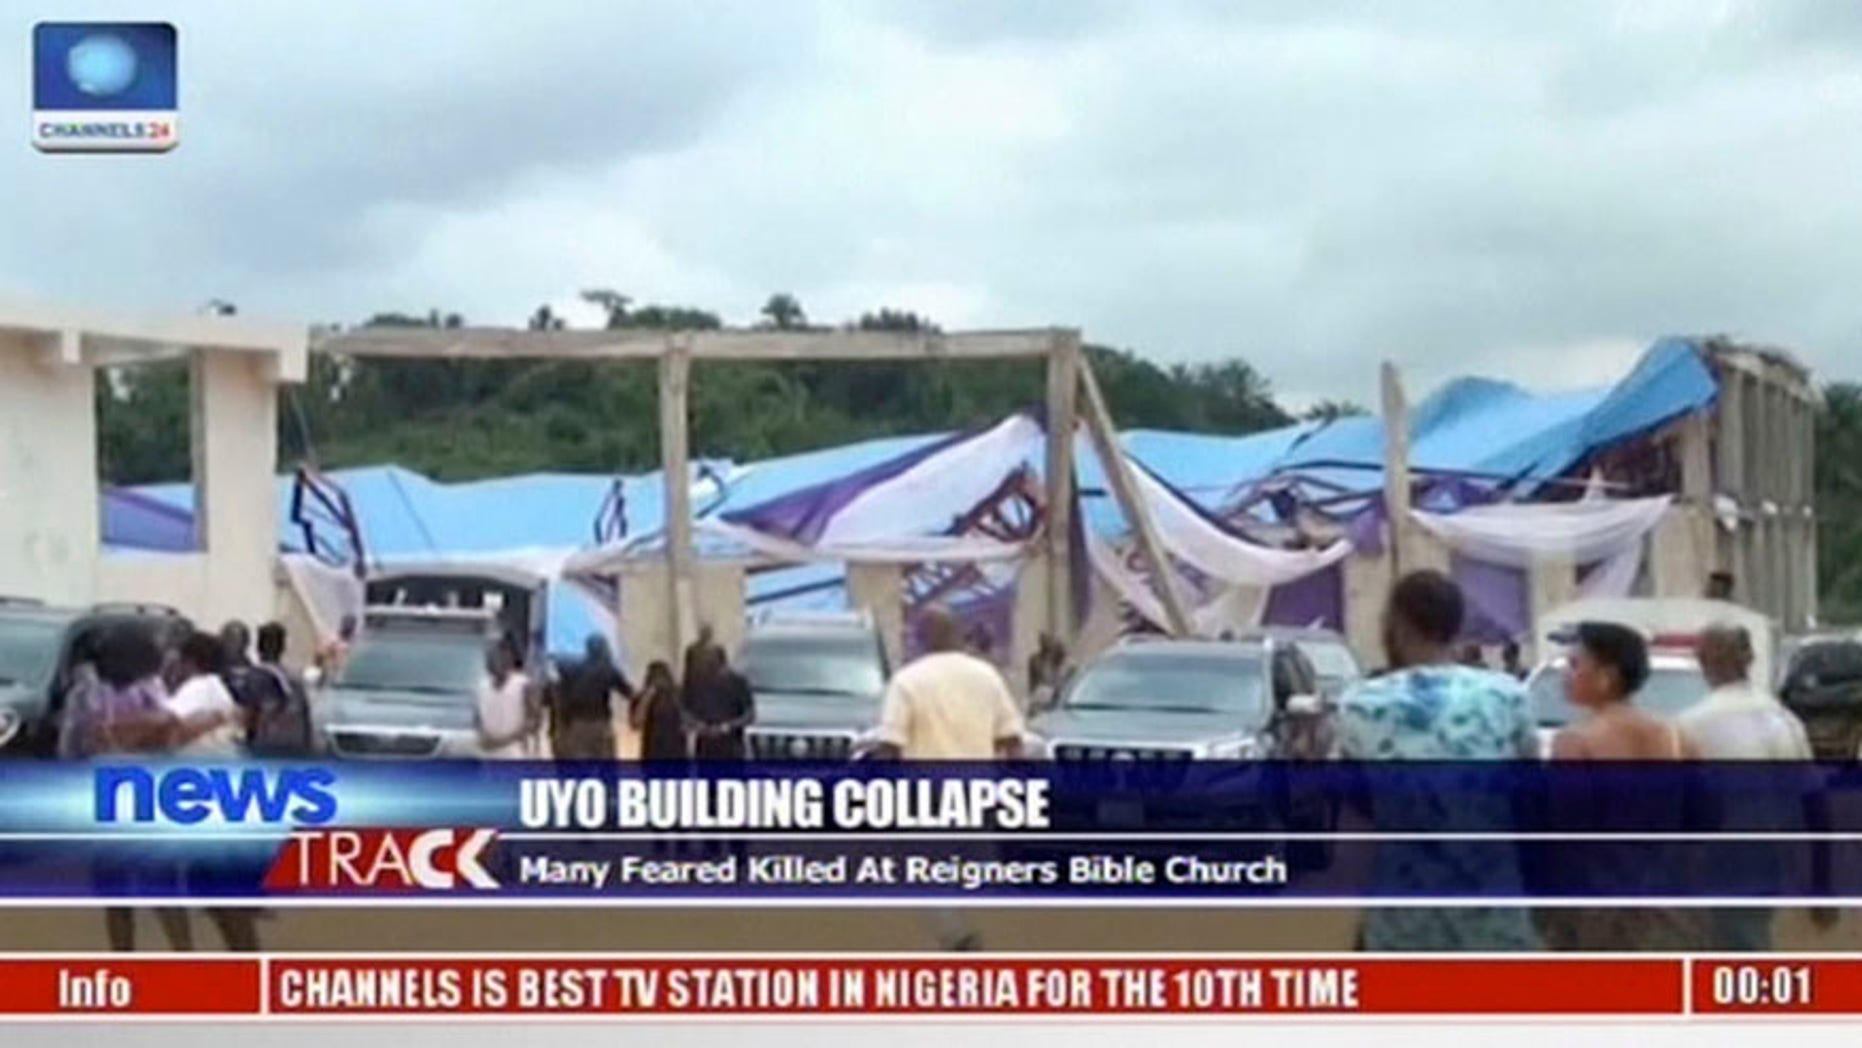 In this image taken from video people stand at the scene after the roof of The Reigners Bible Church International collapsed onto worshippers in Uyo, southern Nigeria on Saturday, Dec. 10, 2016, killing dozens, witnesses and an official said. (Channels TV via AP)